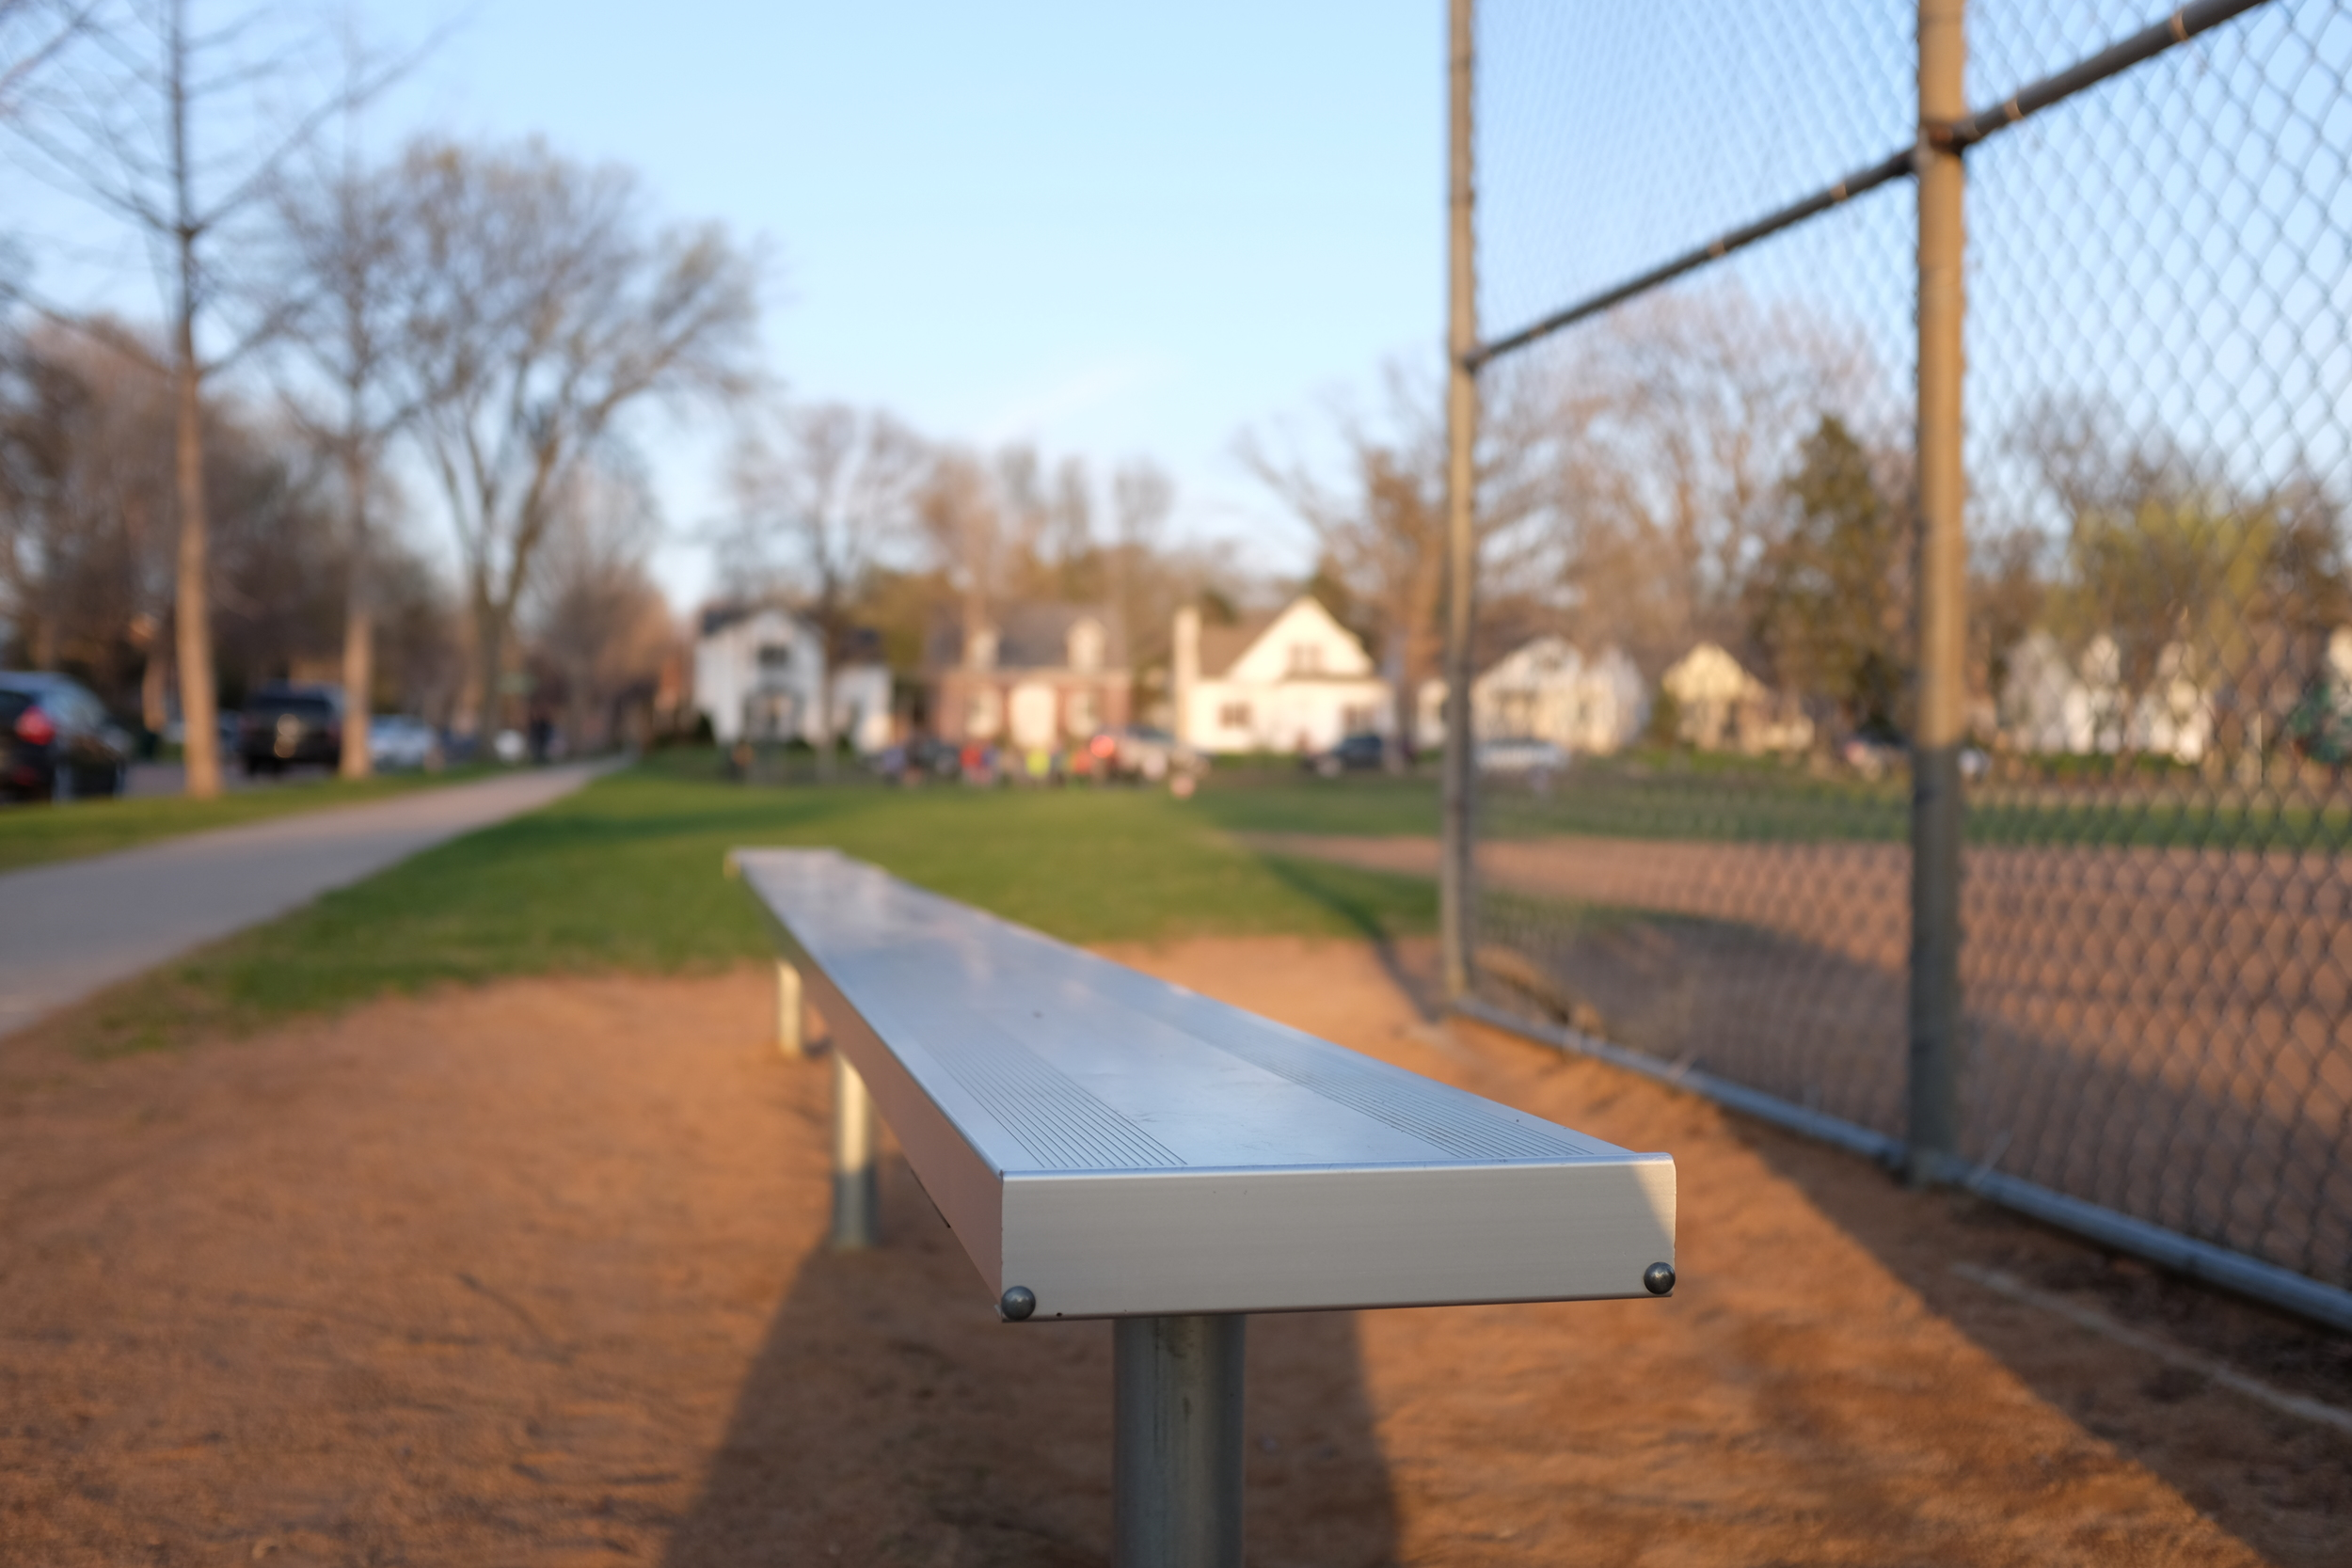 After practice. One of the ball fields in the neighborhood. Highland Park, Saint Paul, Minnesota.